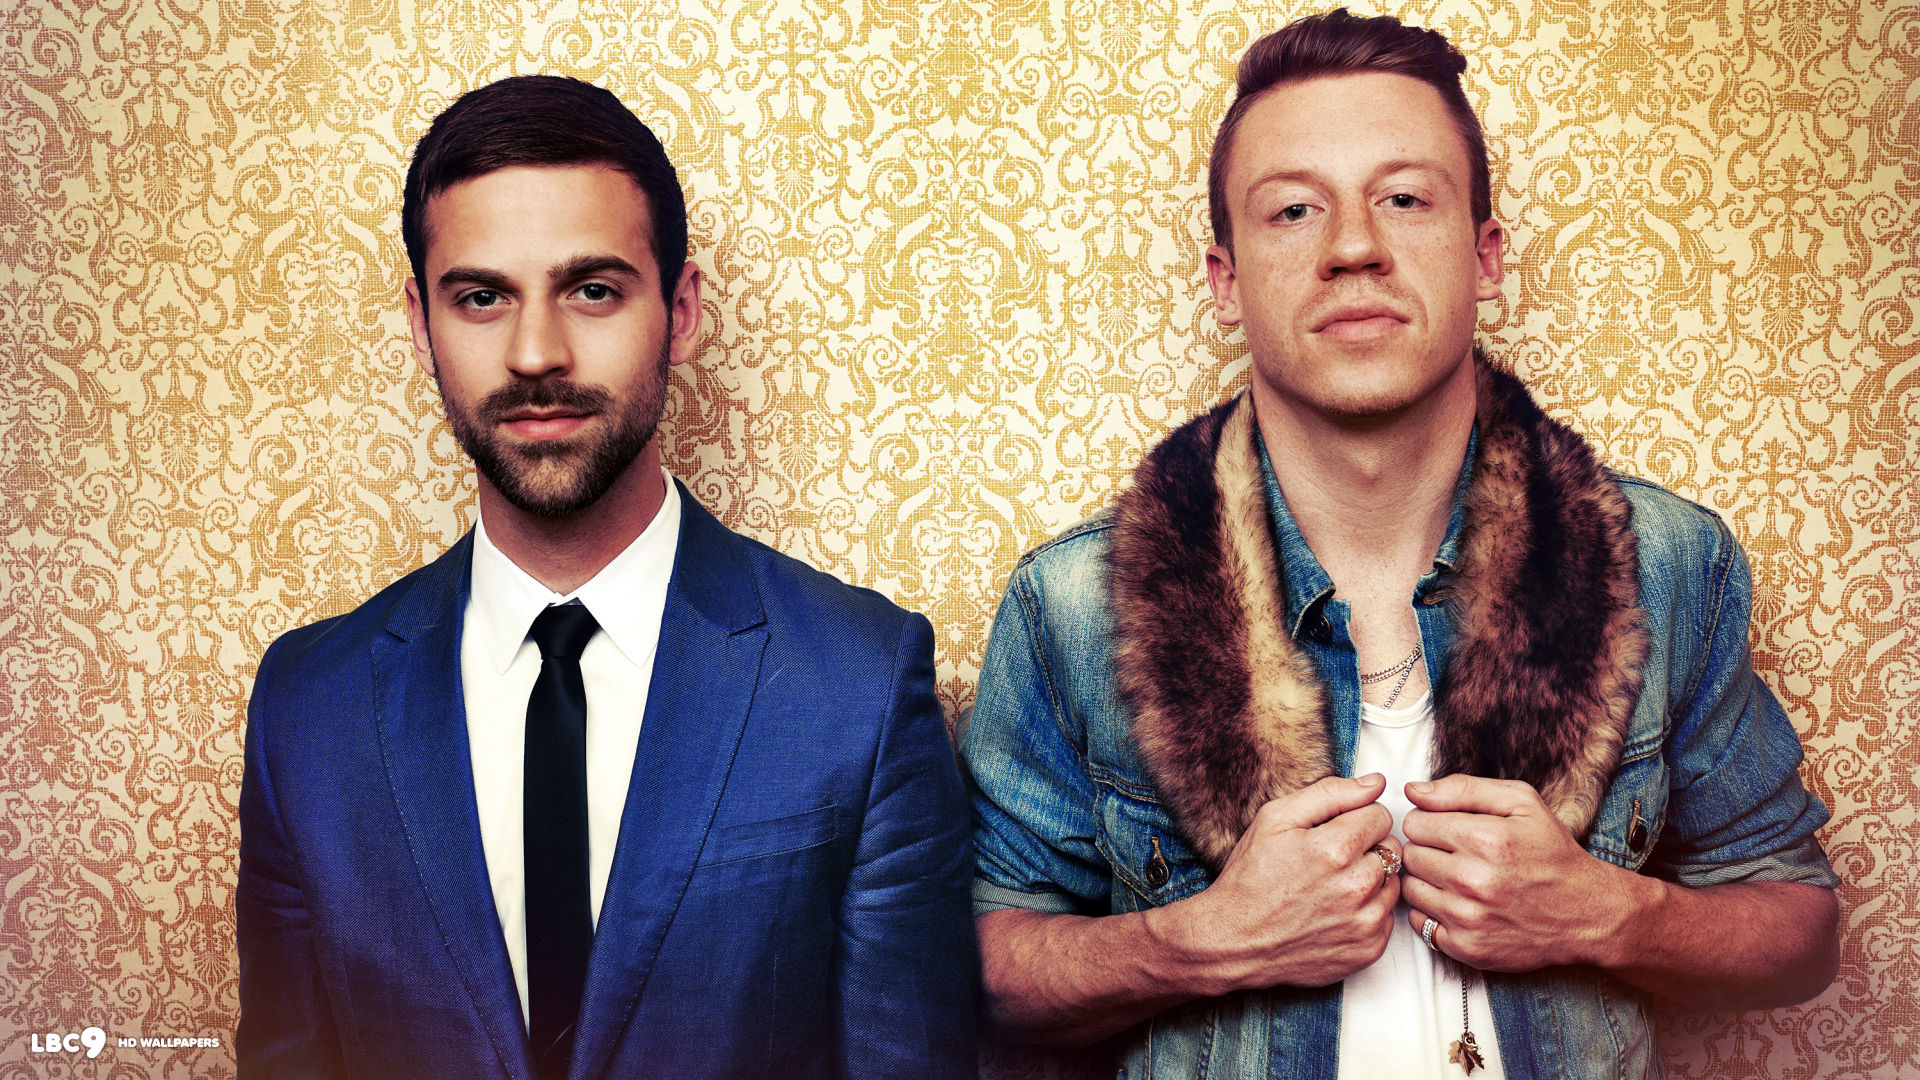 macklemore and ryan lewis hd wallpaper